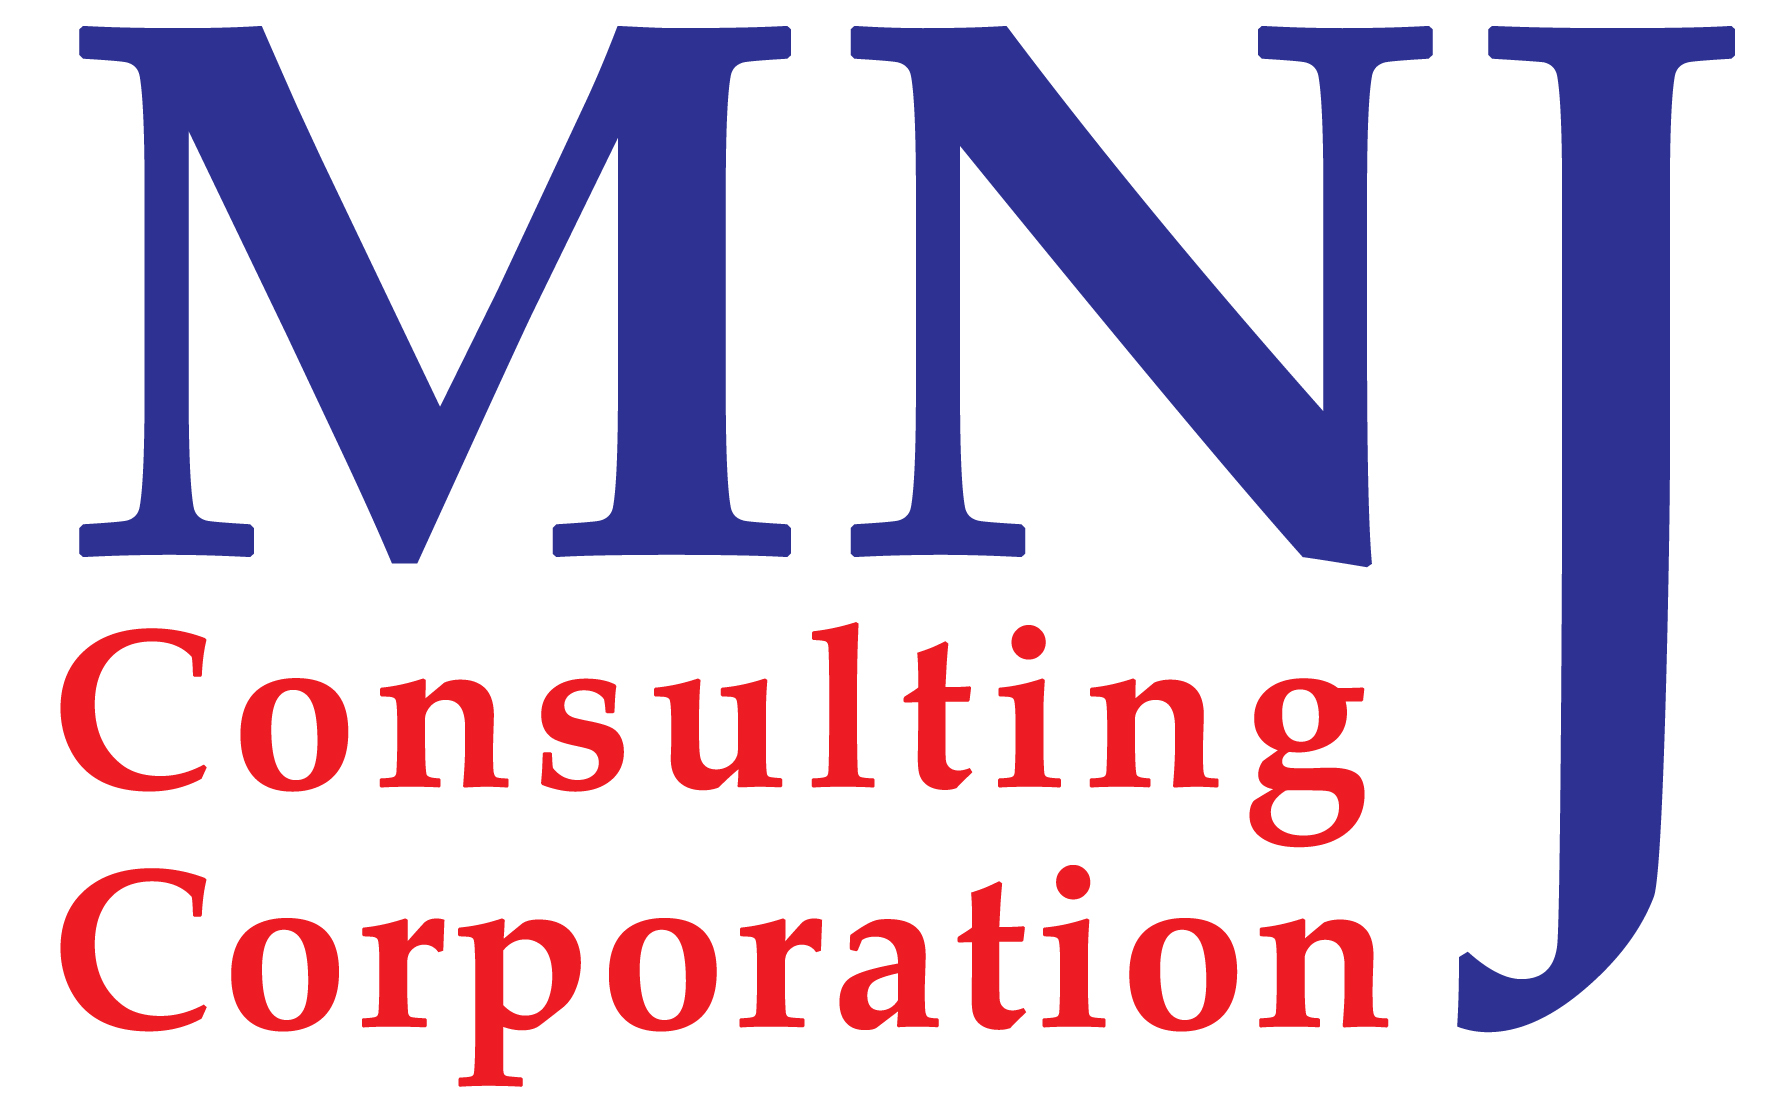 MNJ Consulting Corporation